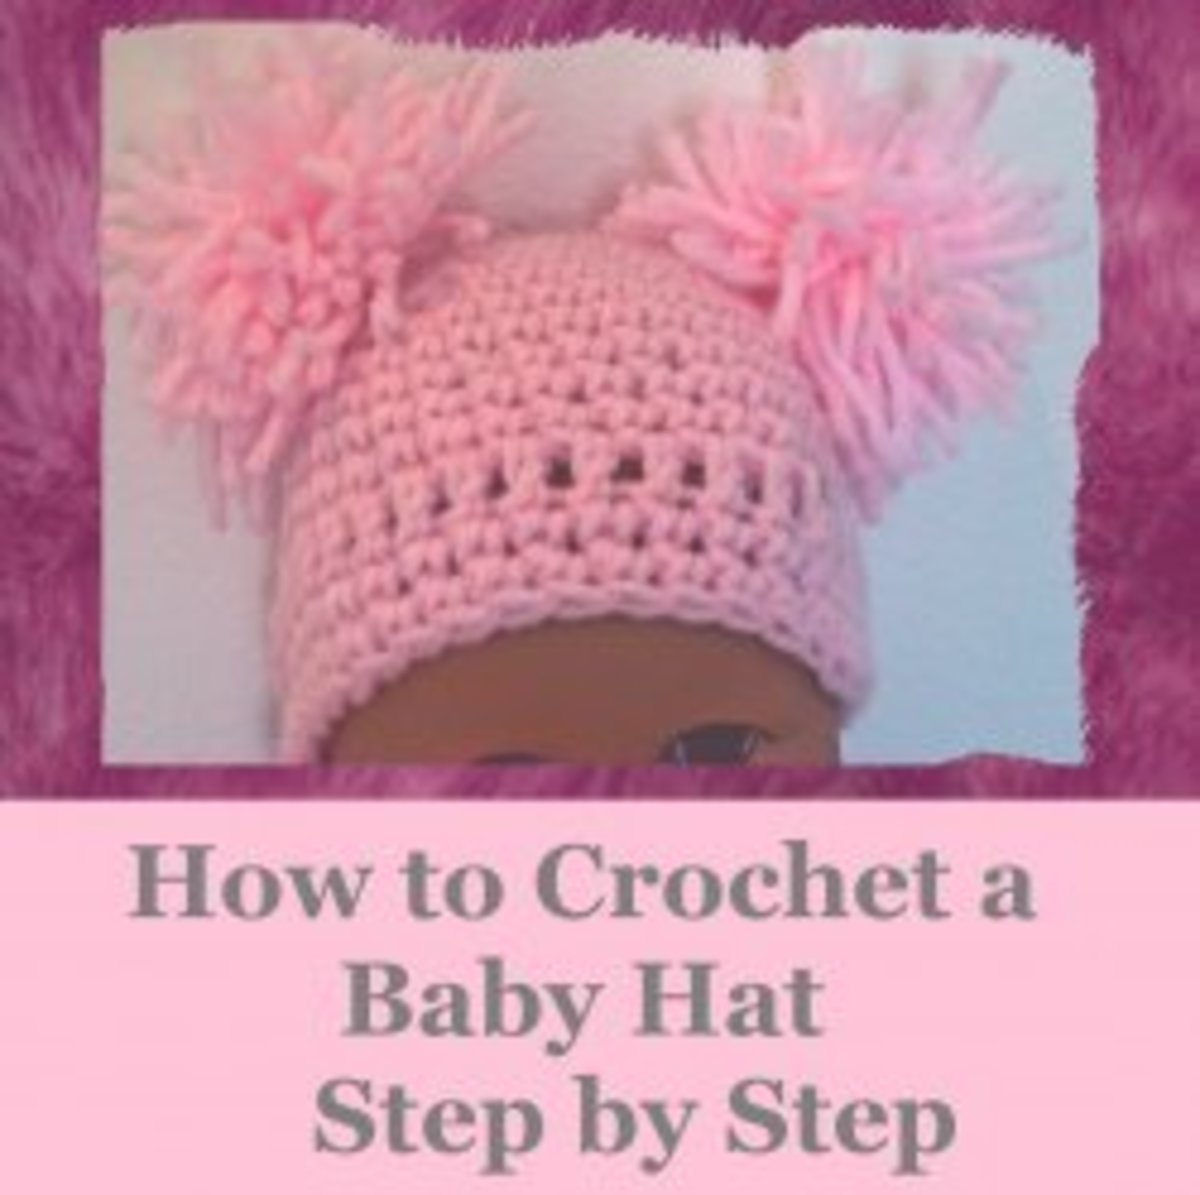 How To Crochet A Baby Hat Ideal For Beginners With Step By Step